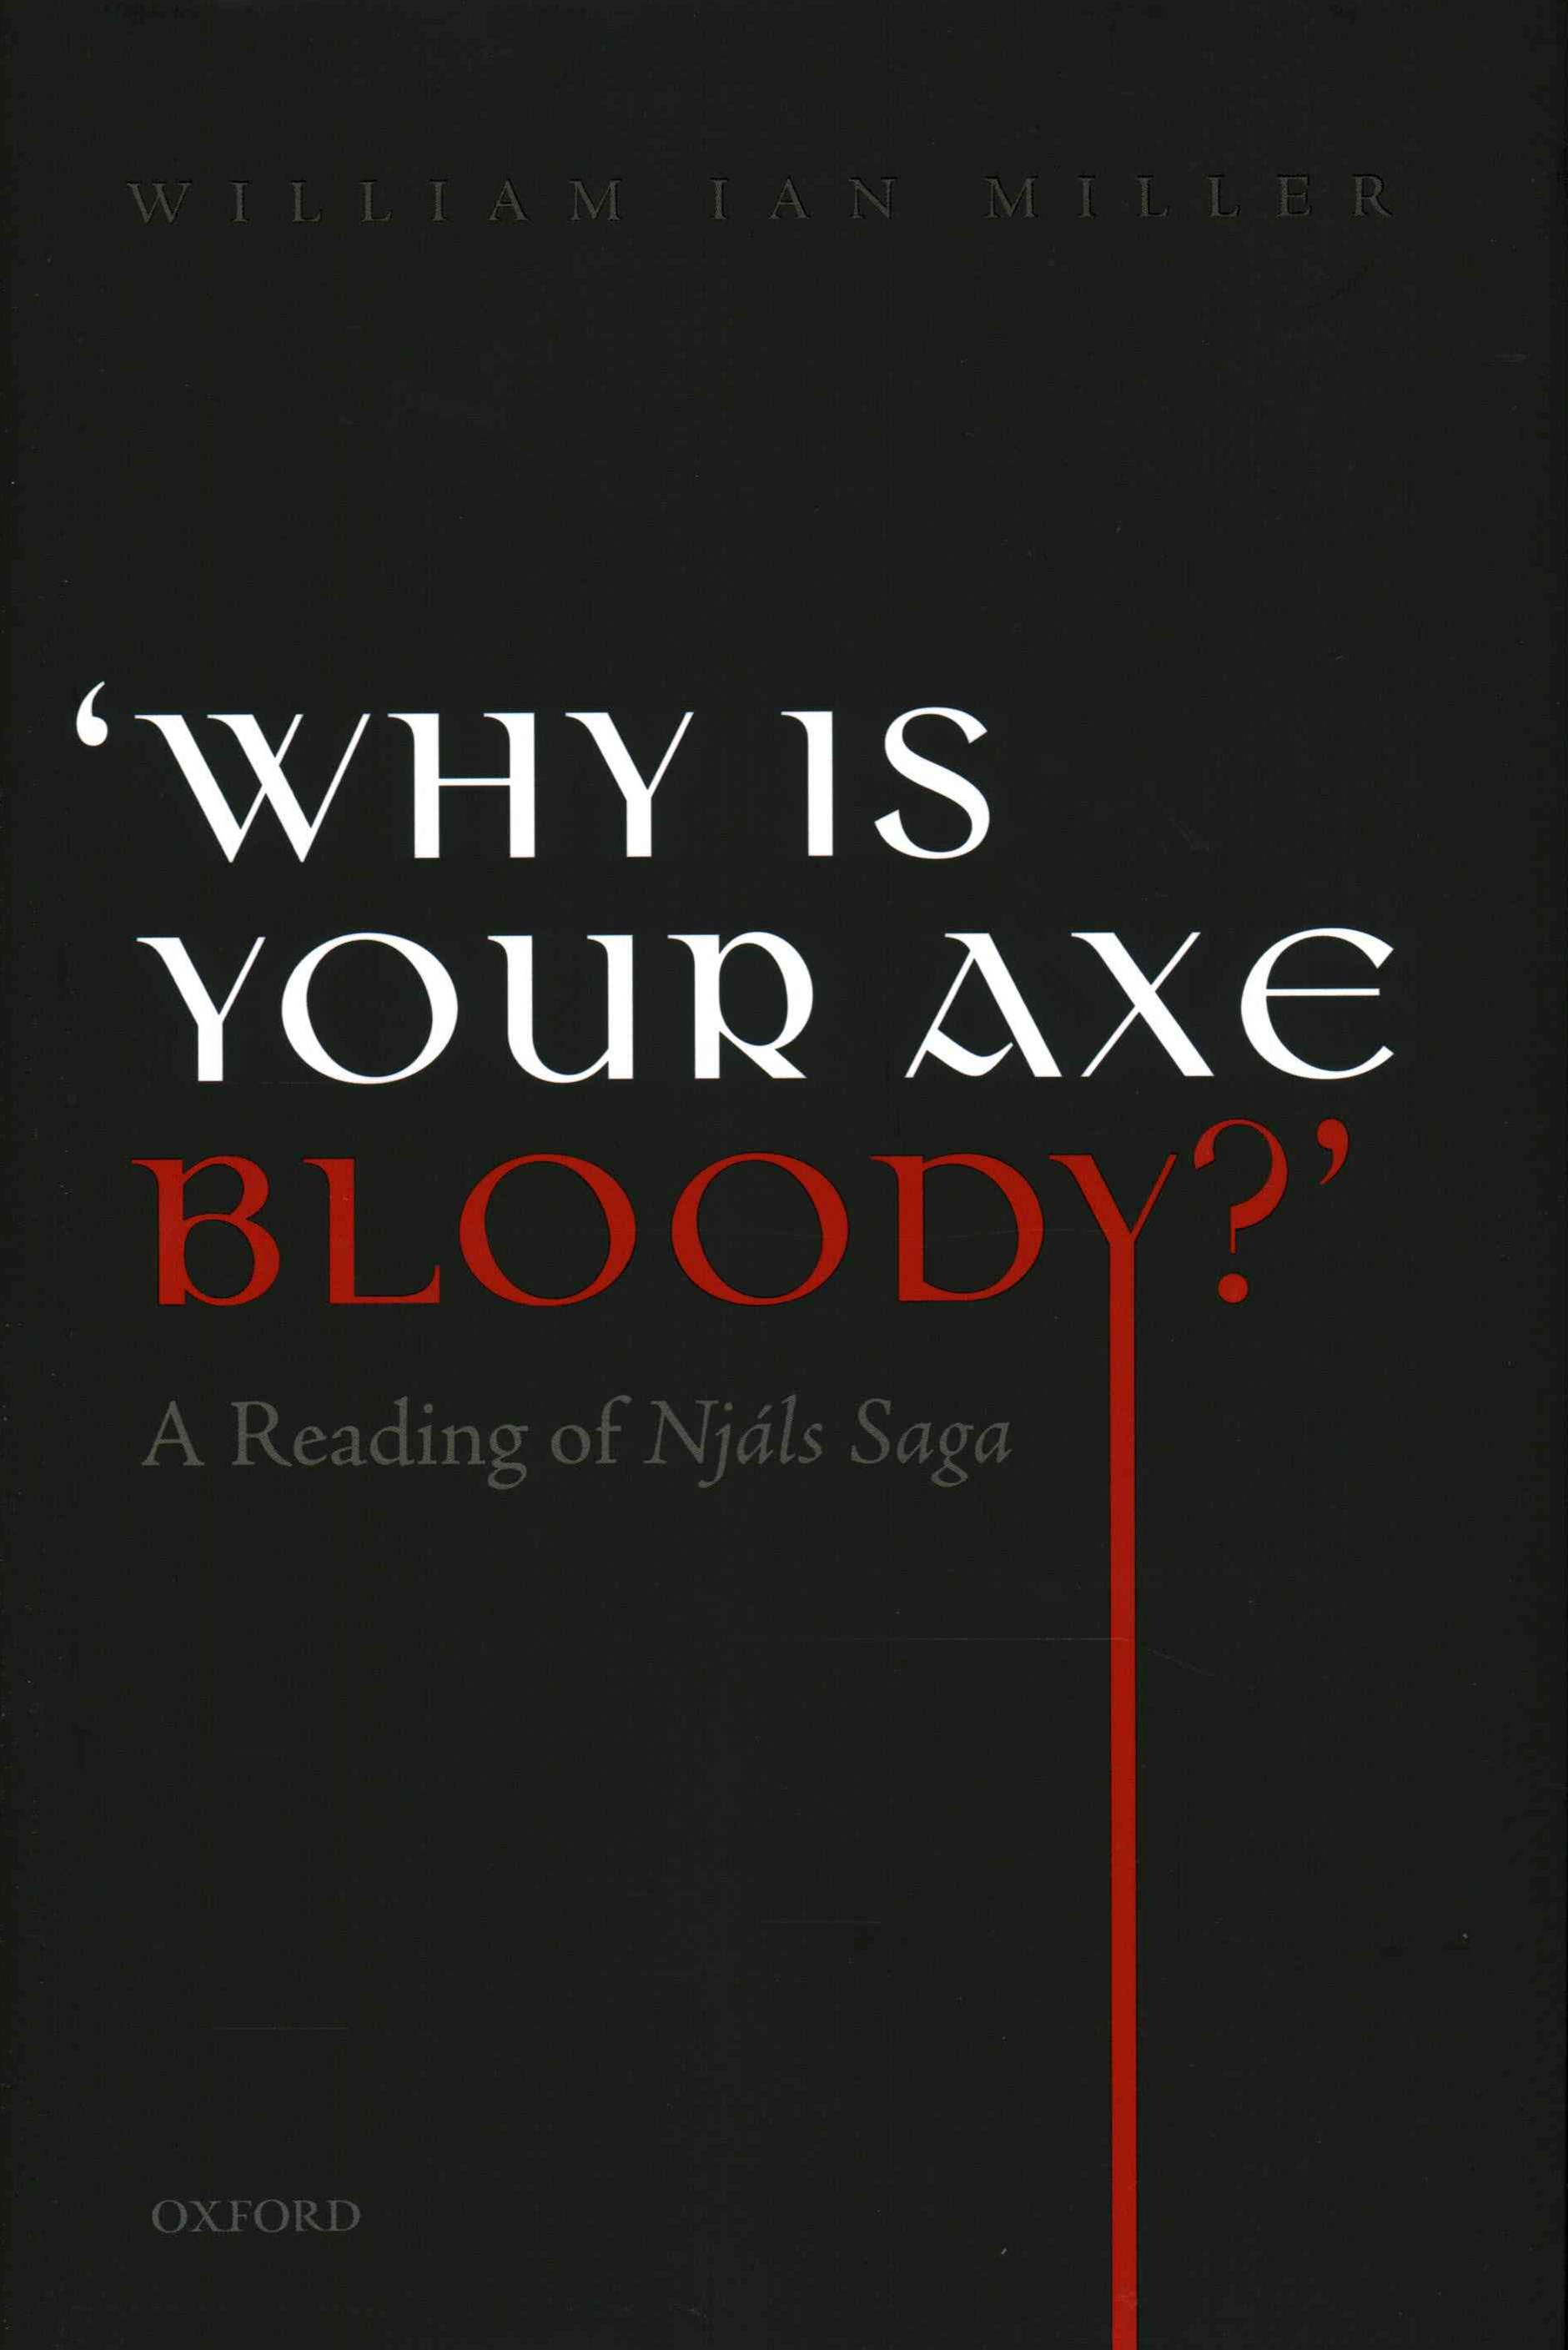 'Why is Your Axe Bloody?'